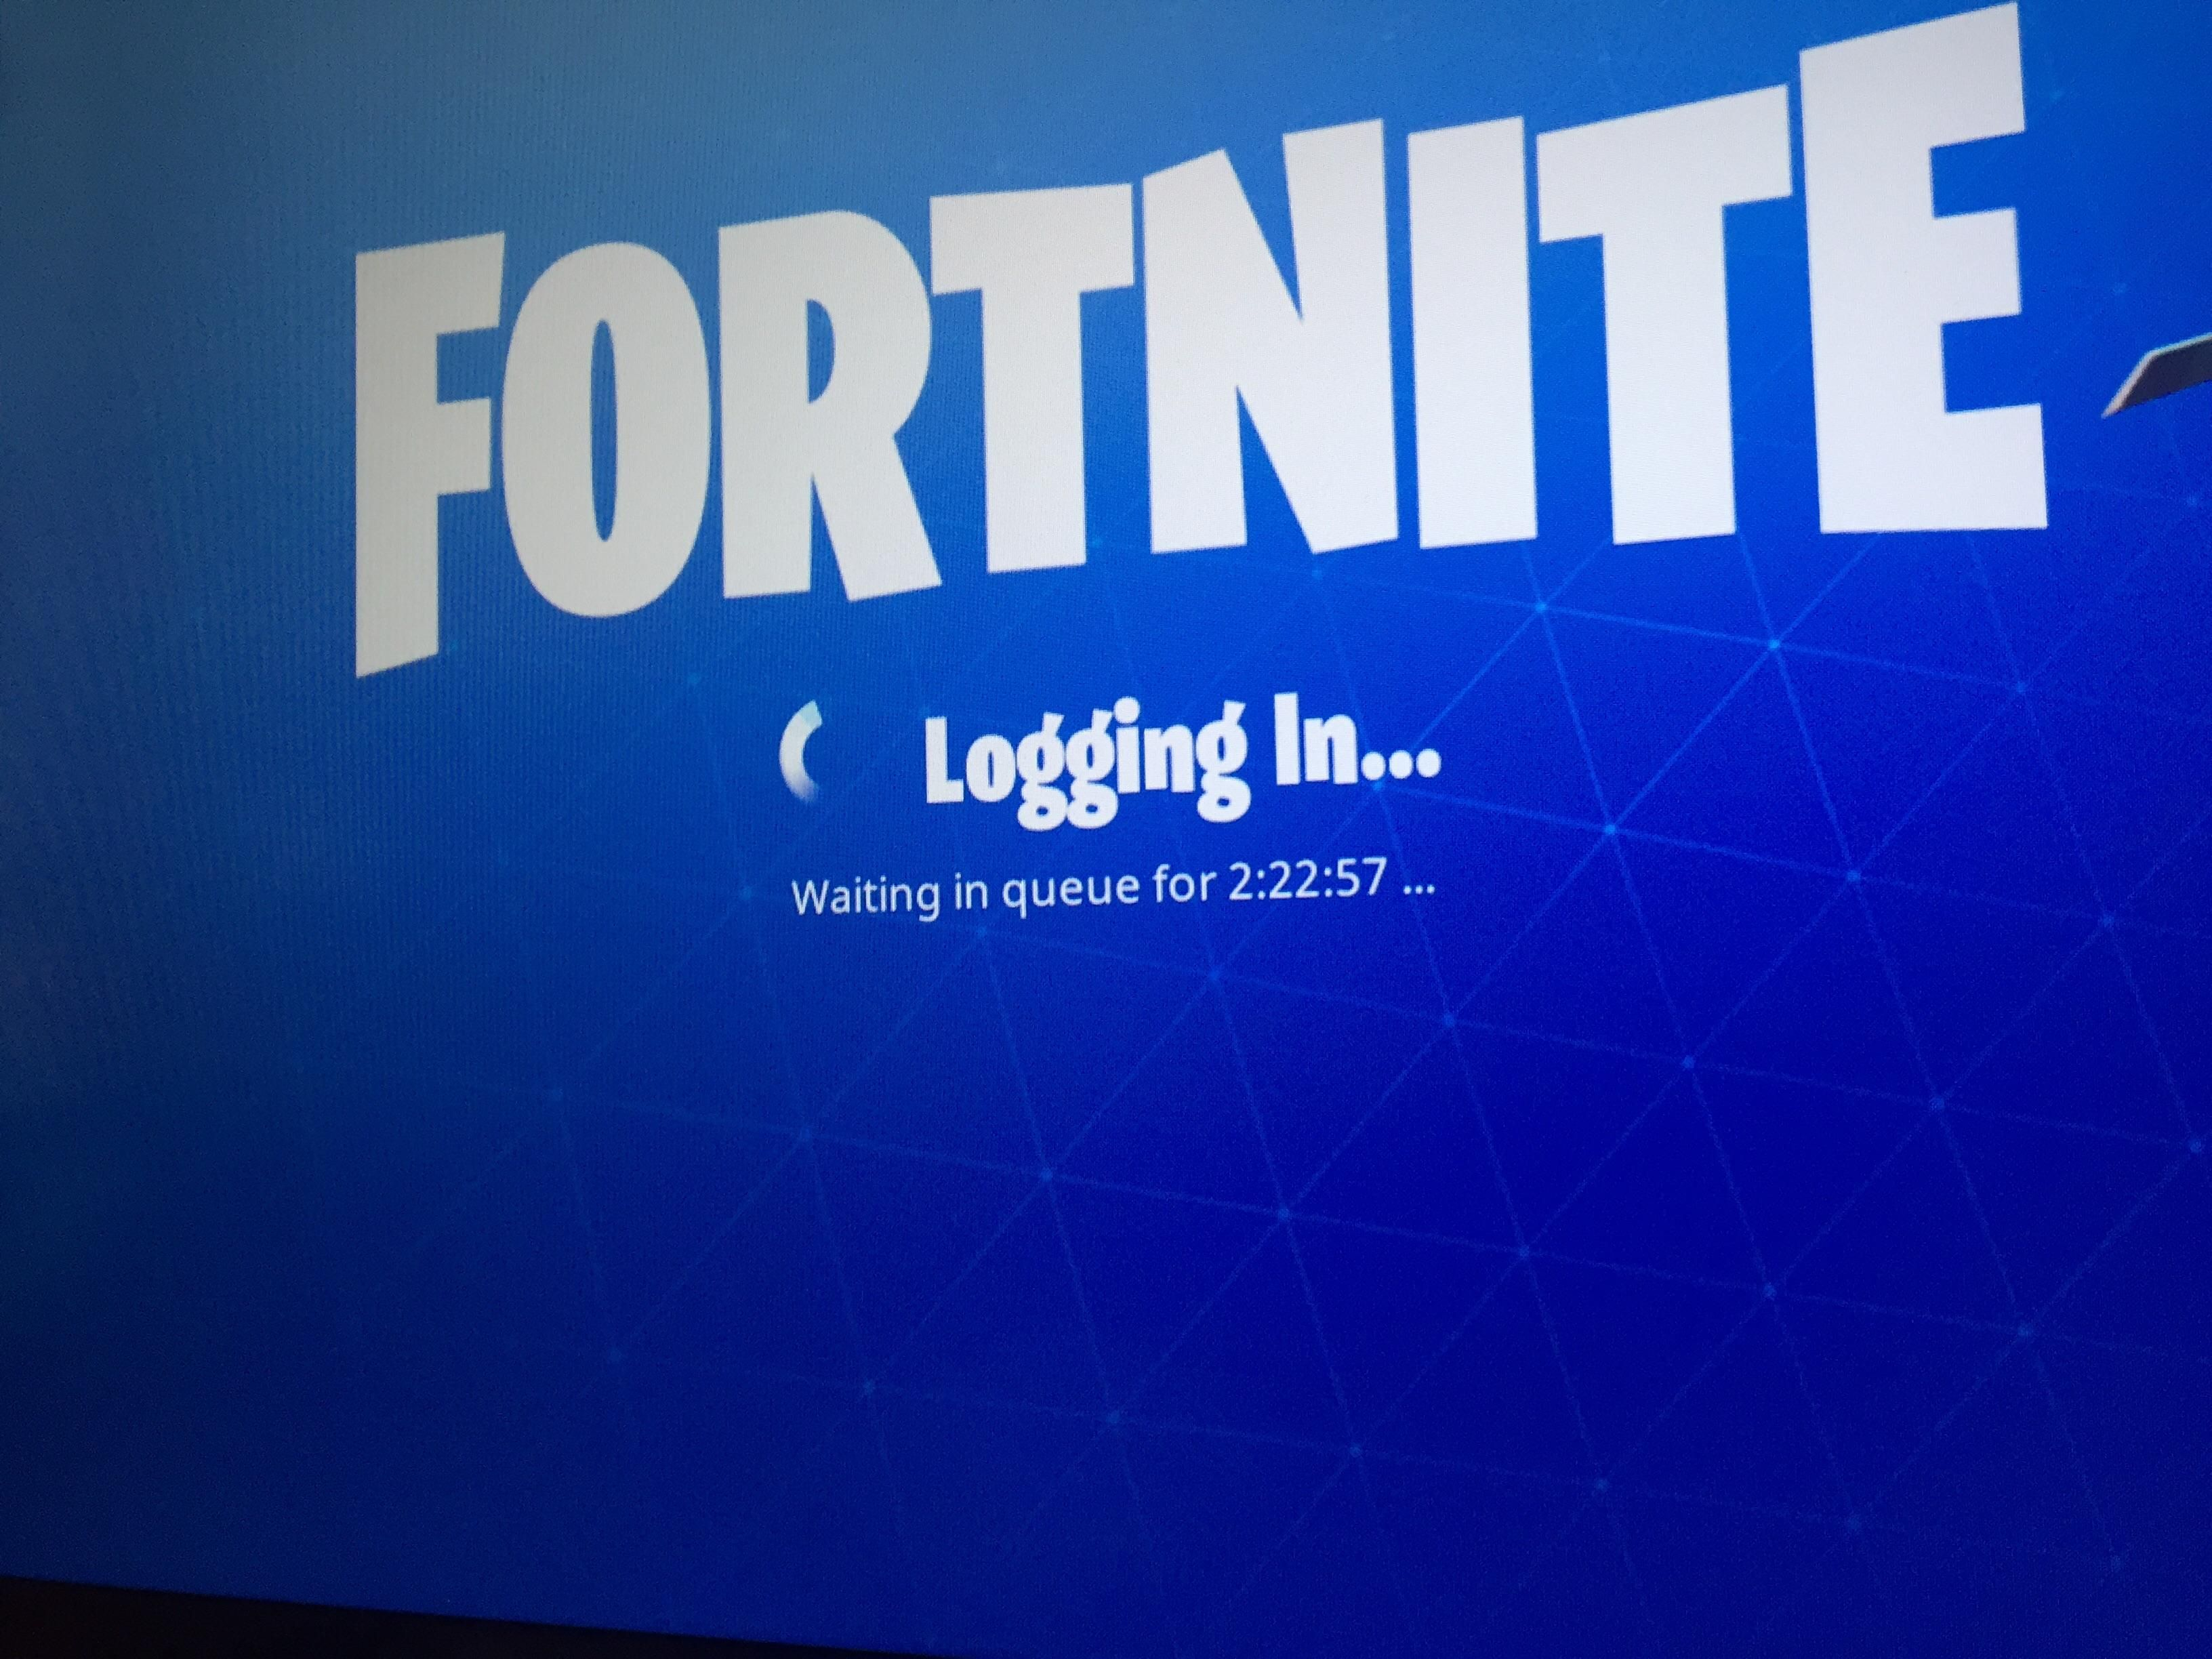 Yeah I Was Hoping To Play Some Fortnite Br But Ok Guess Ill Play